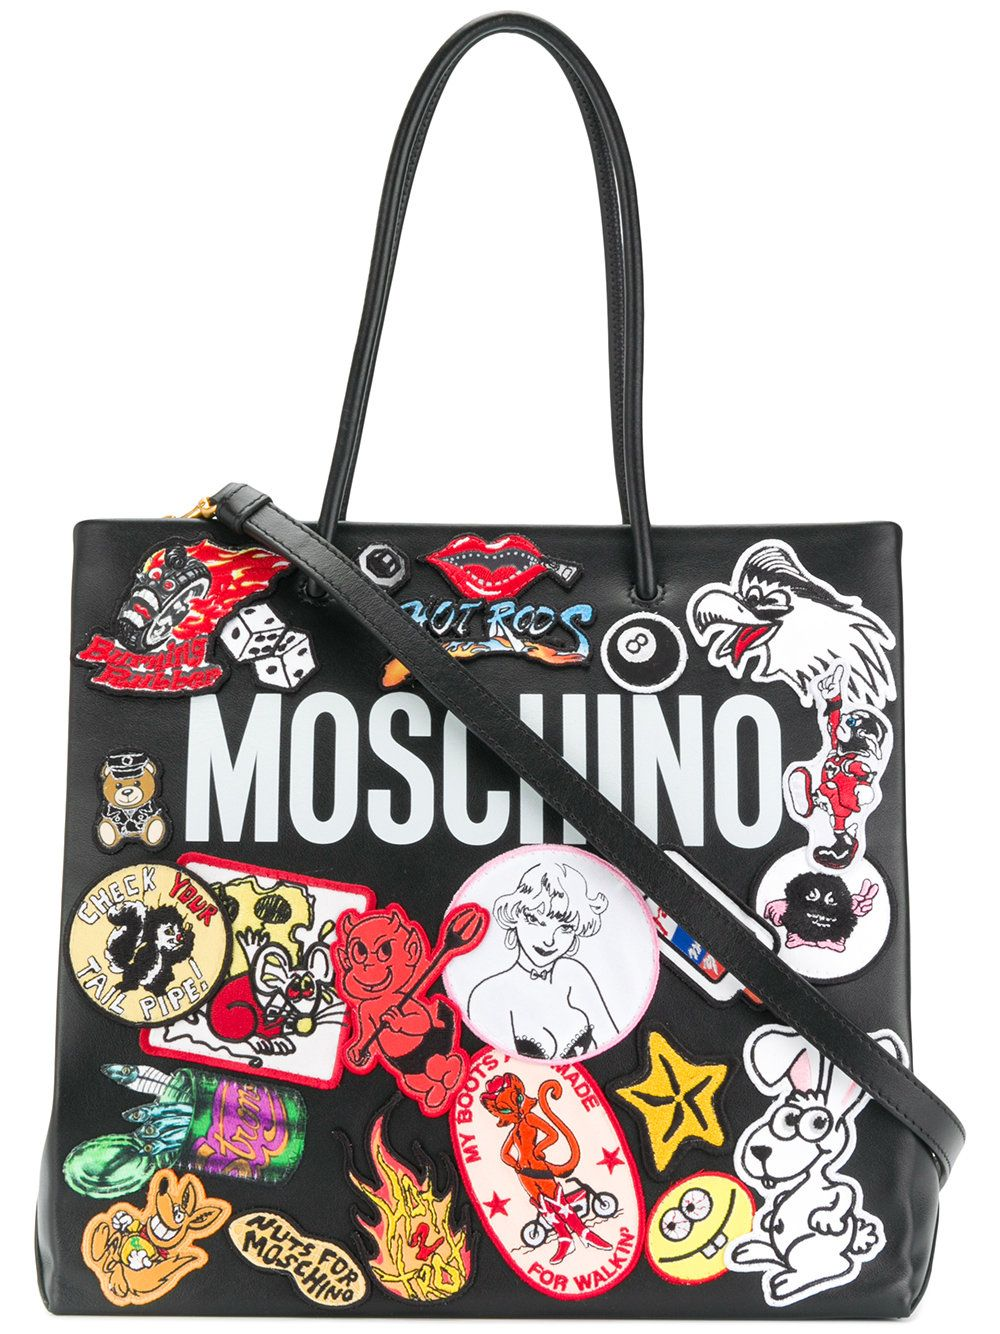 e2783da1677 Moschino logo patch tote bag | Fashion in 2019 | Moschino bag, Bags ...